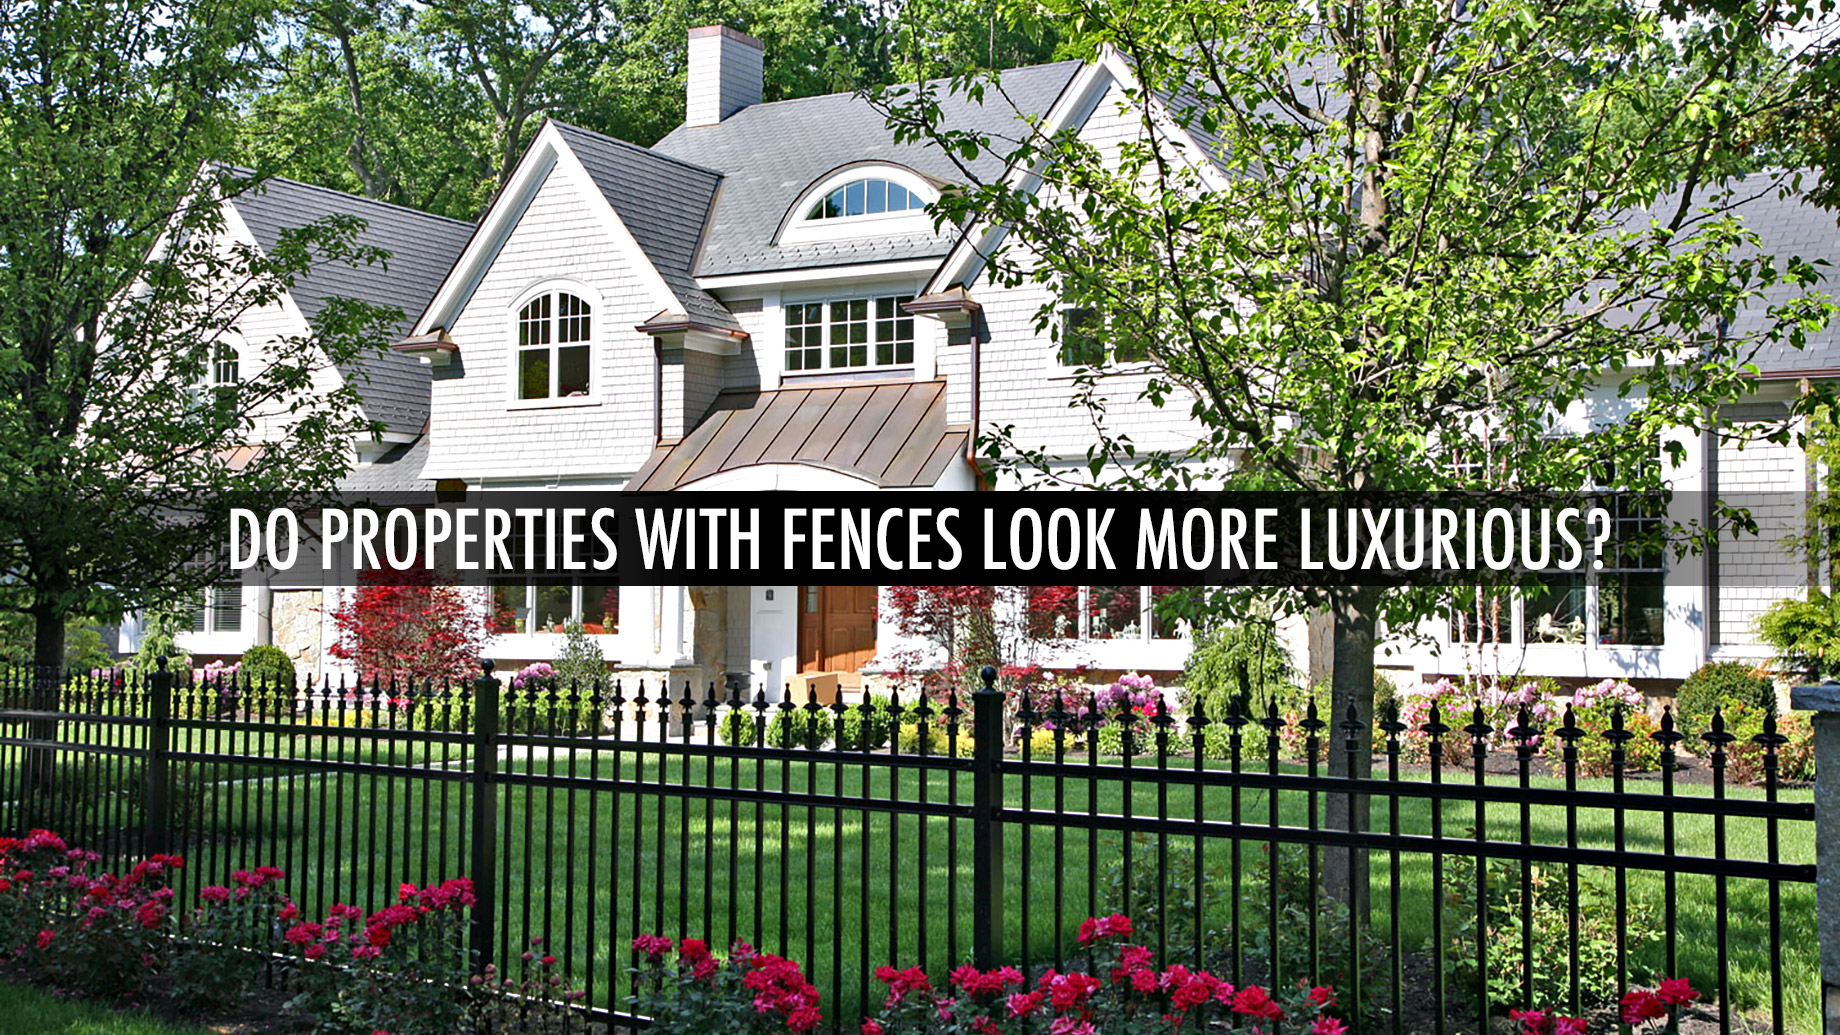 Do Properties With Fences Look More Luxurious